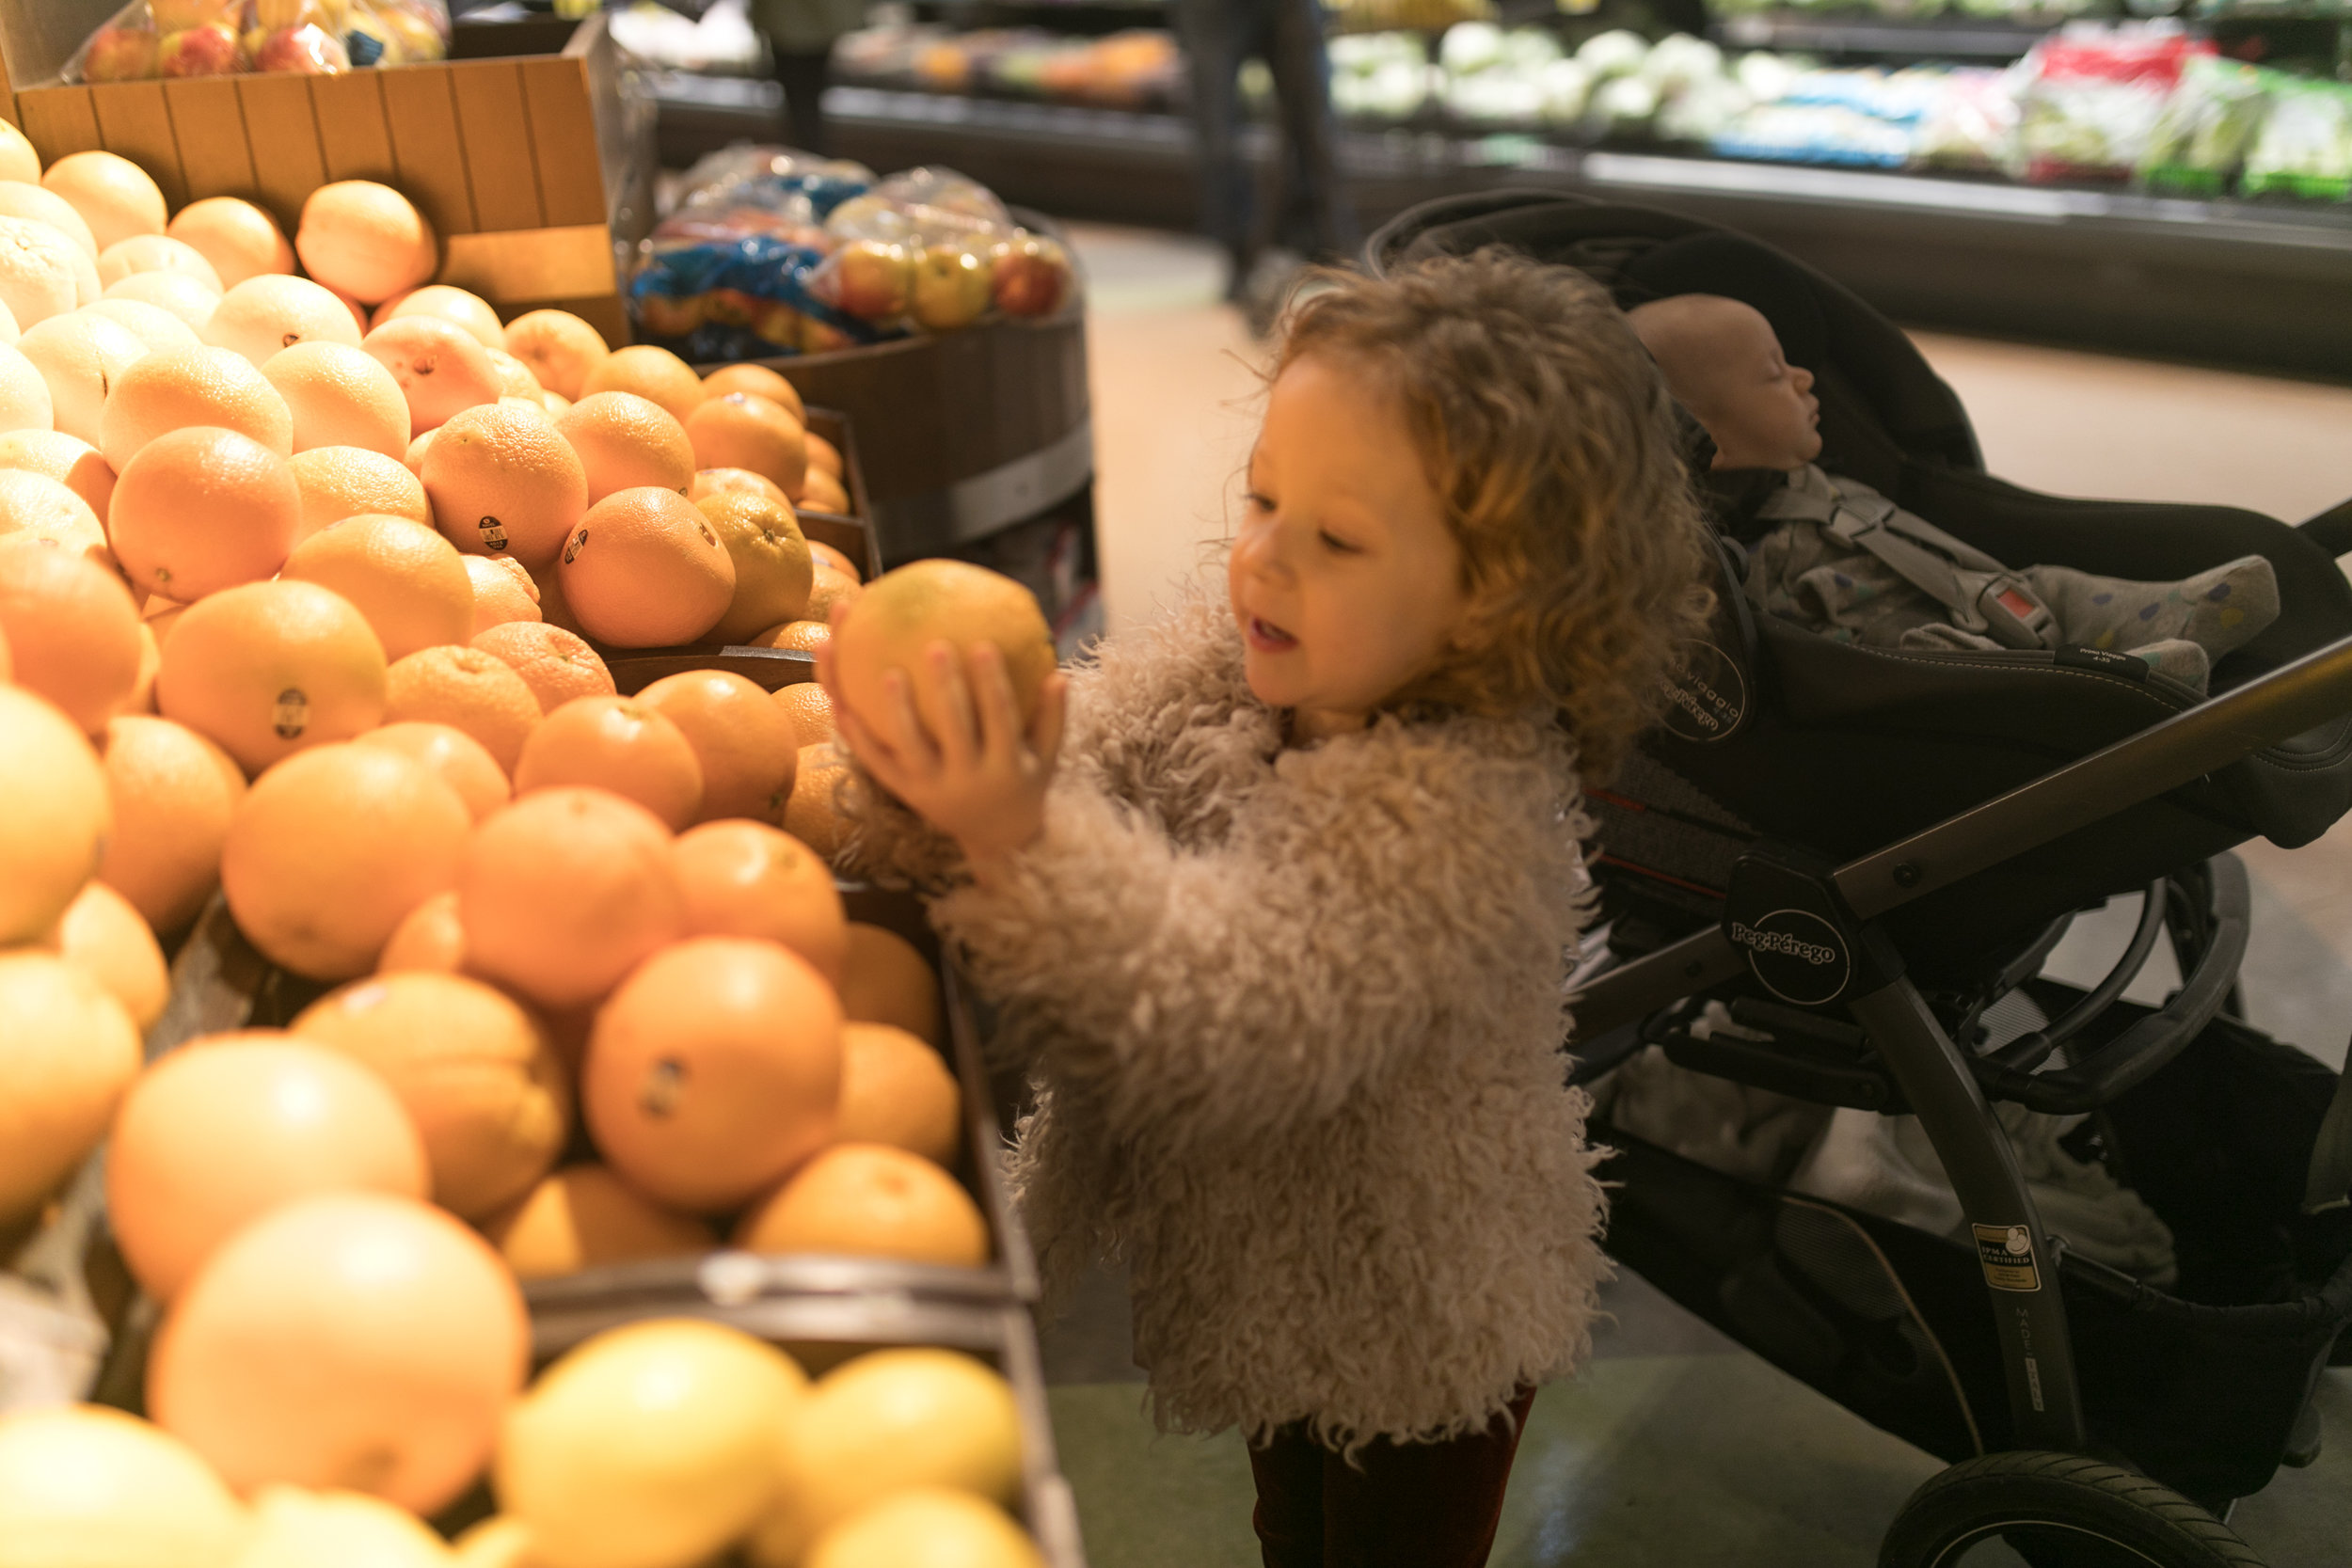 involving children in grocery shopping maygen kardash nicole romanoff.jpg